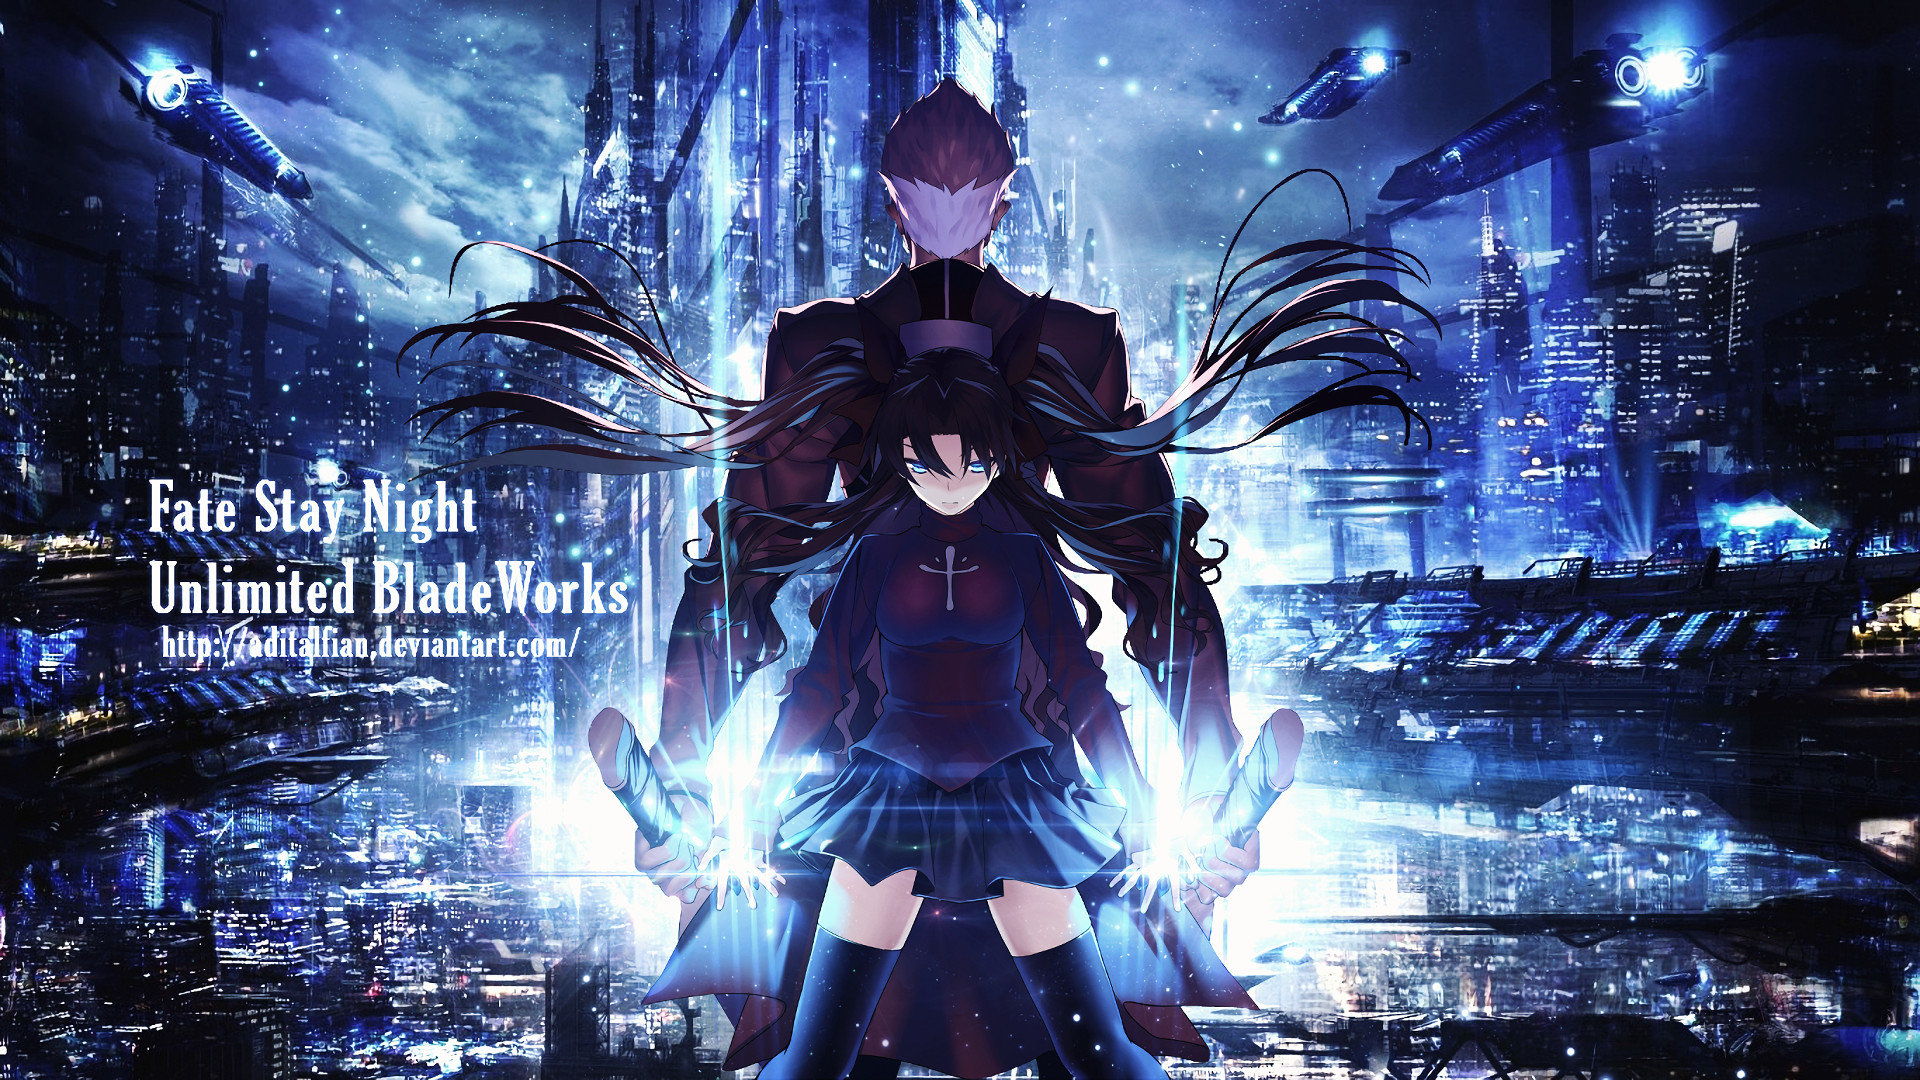 Download 1080p Fate Stay Night Unlimited Blade Works Computer